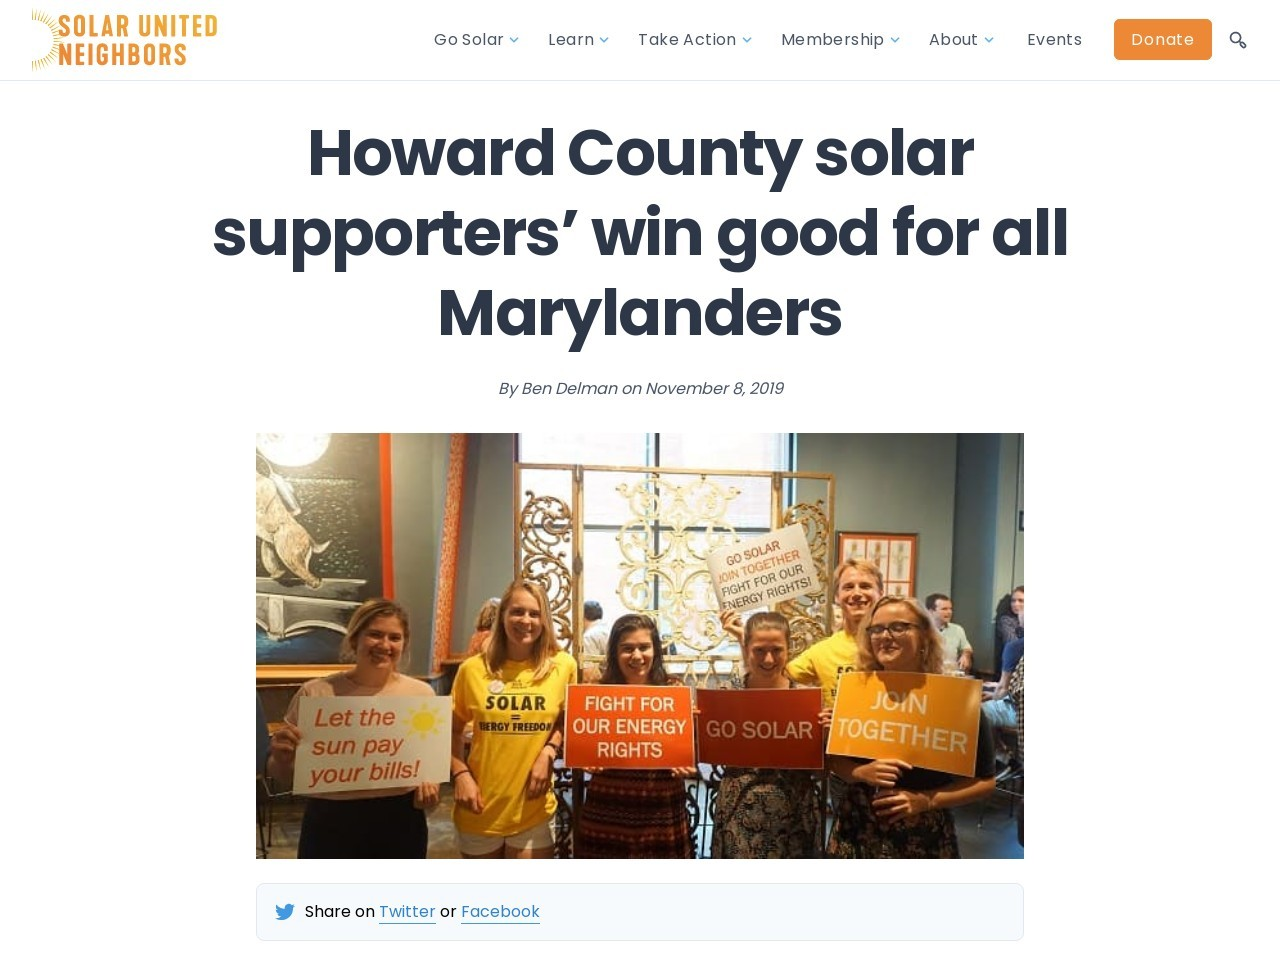 Howard County solar supporters' win good for all Marylanders